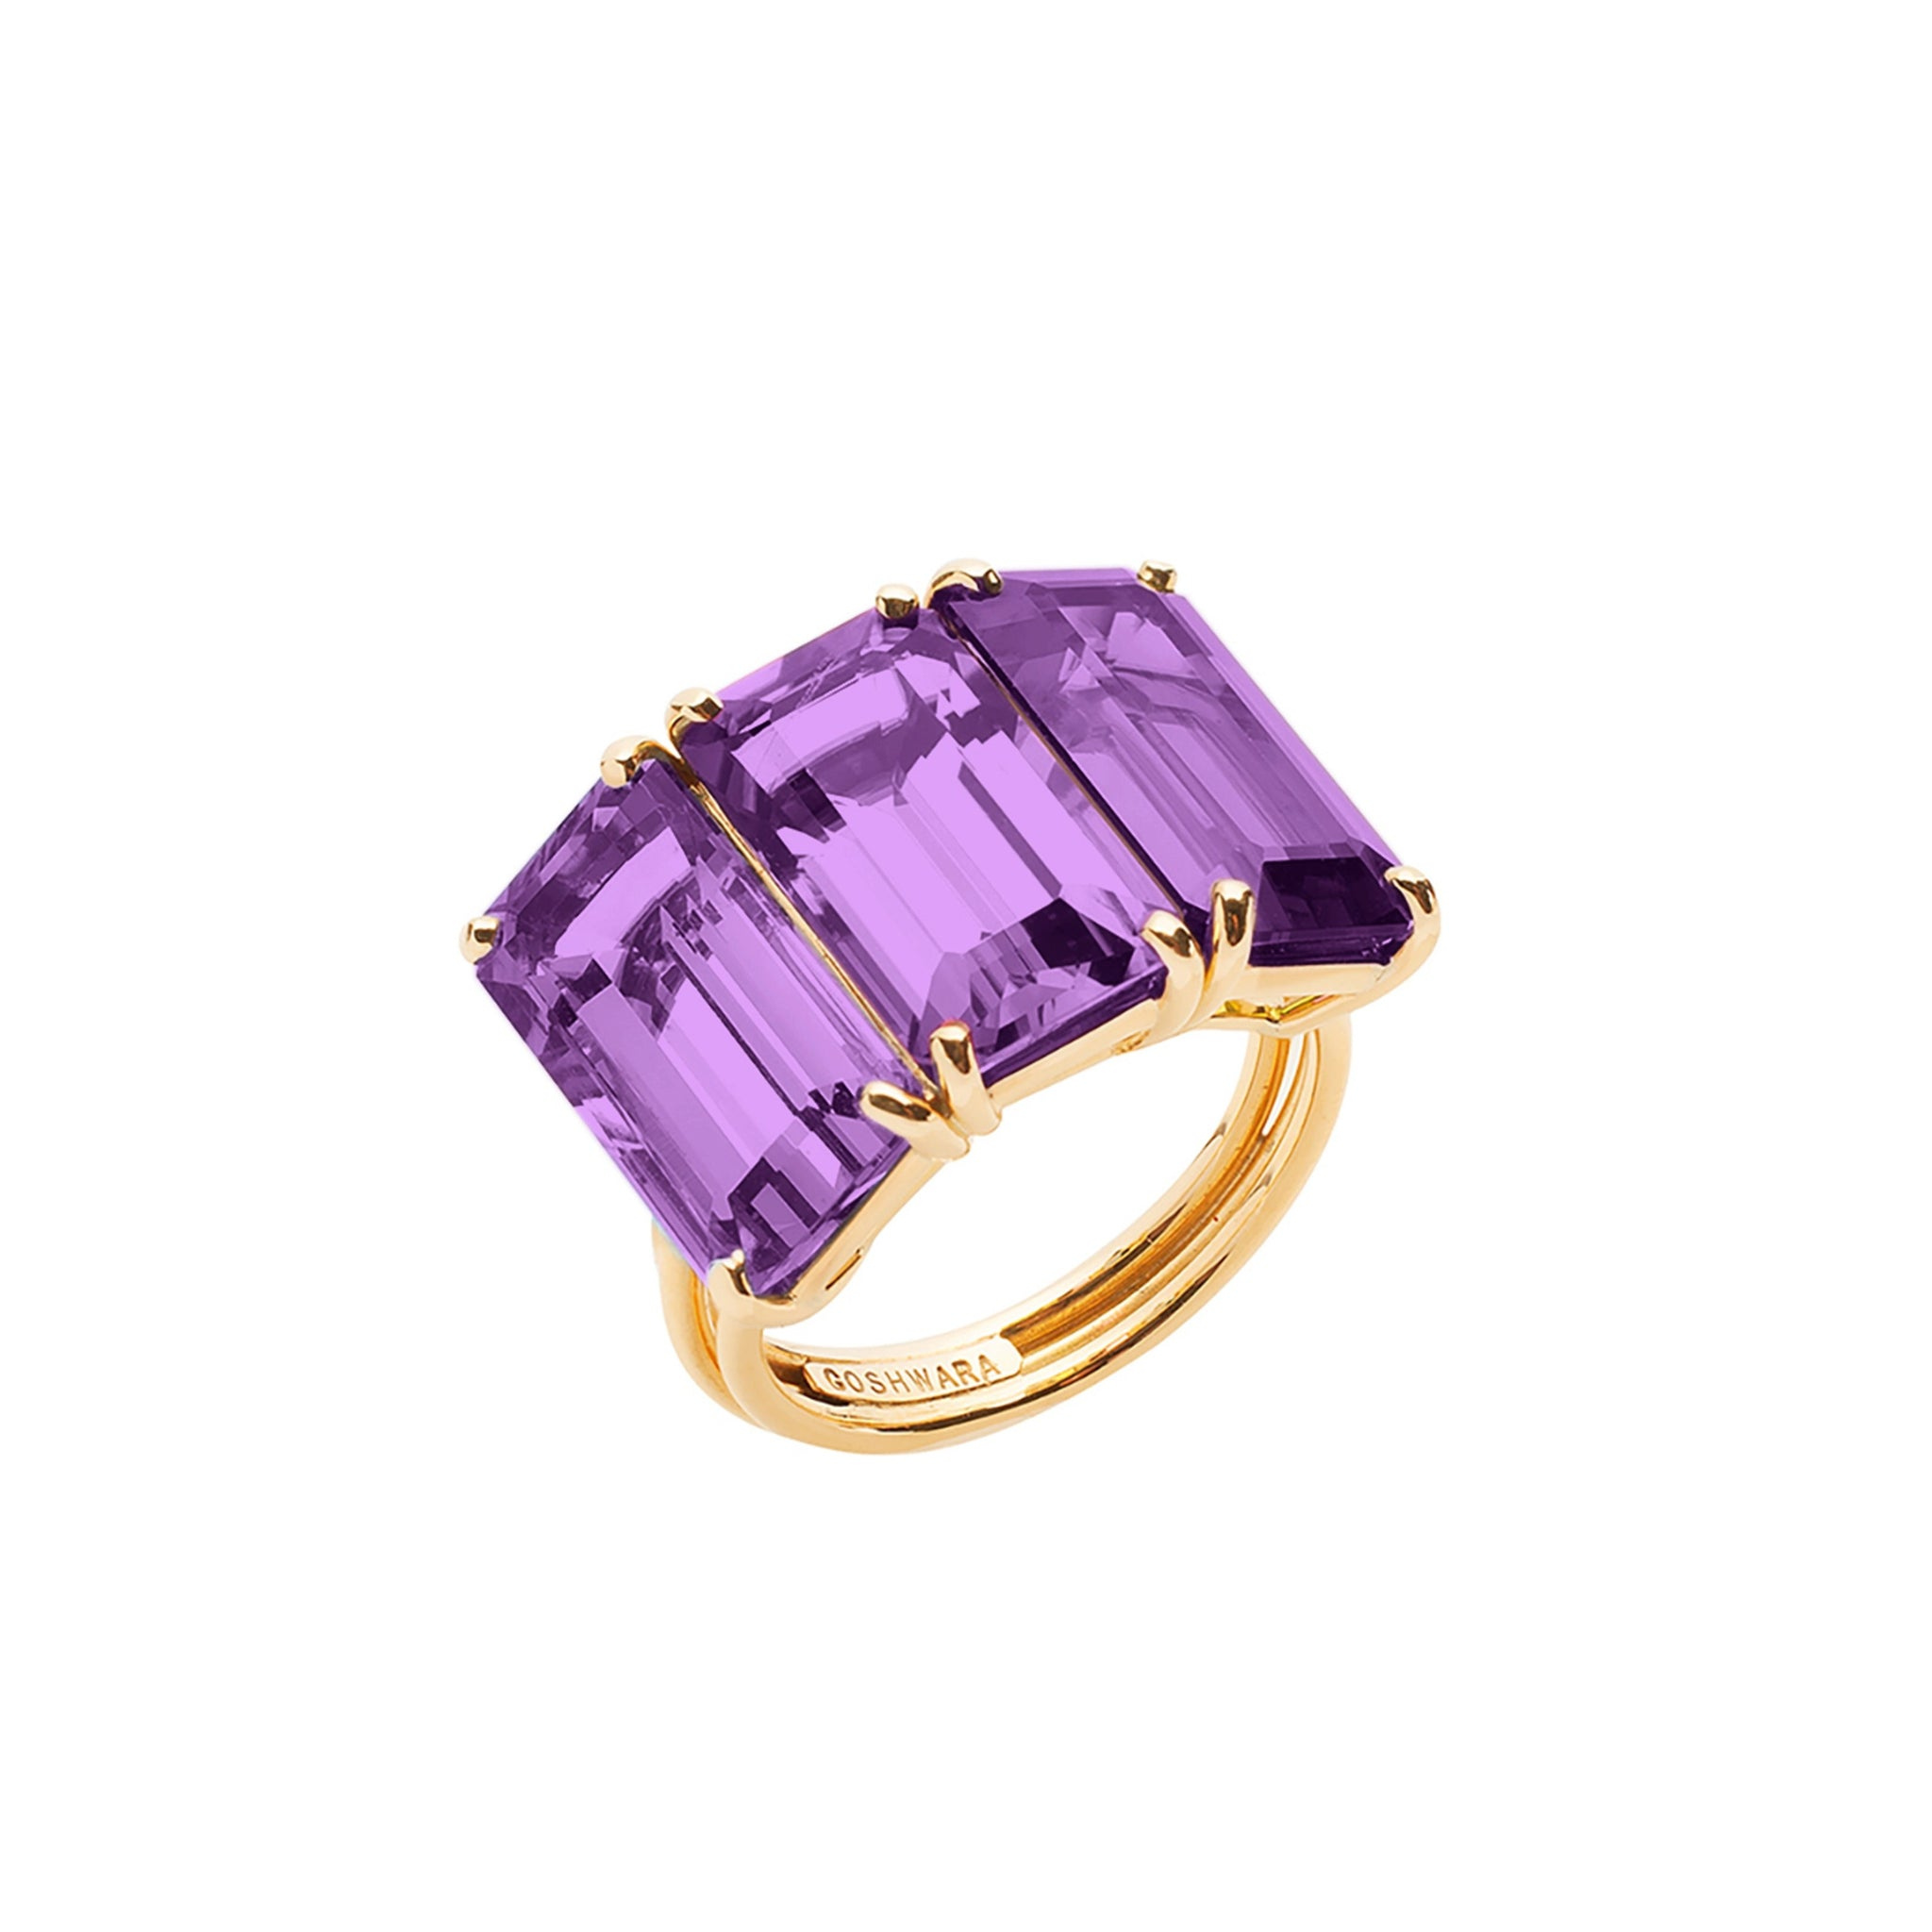 Goshwara Amethyst Ring, SOLD